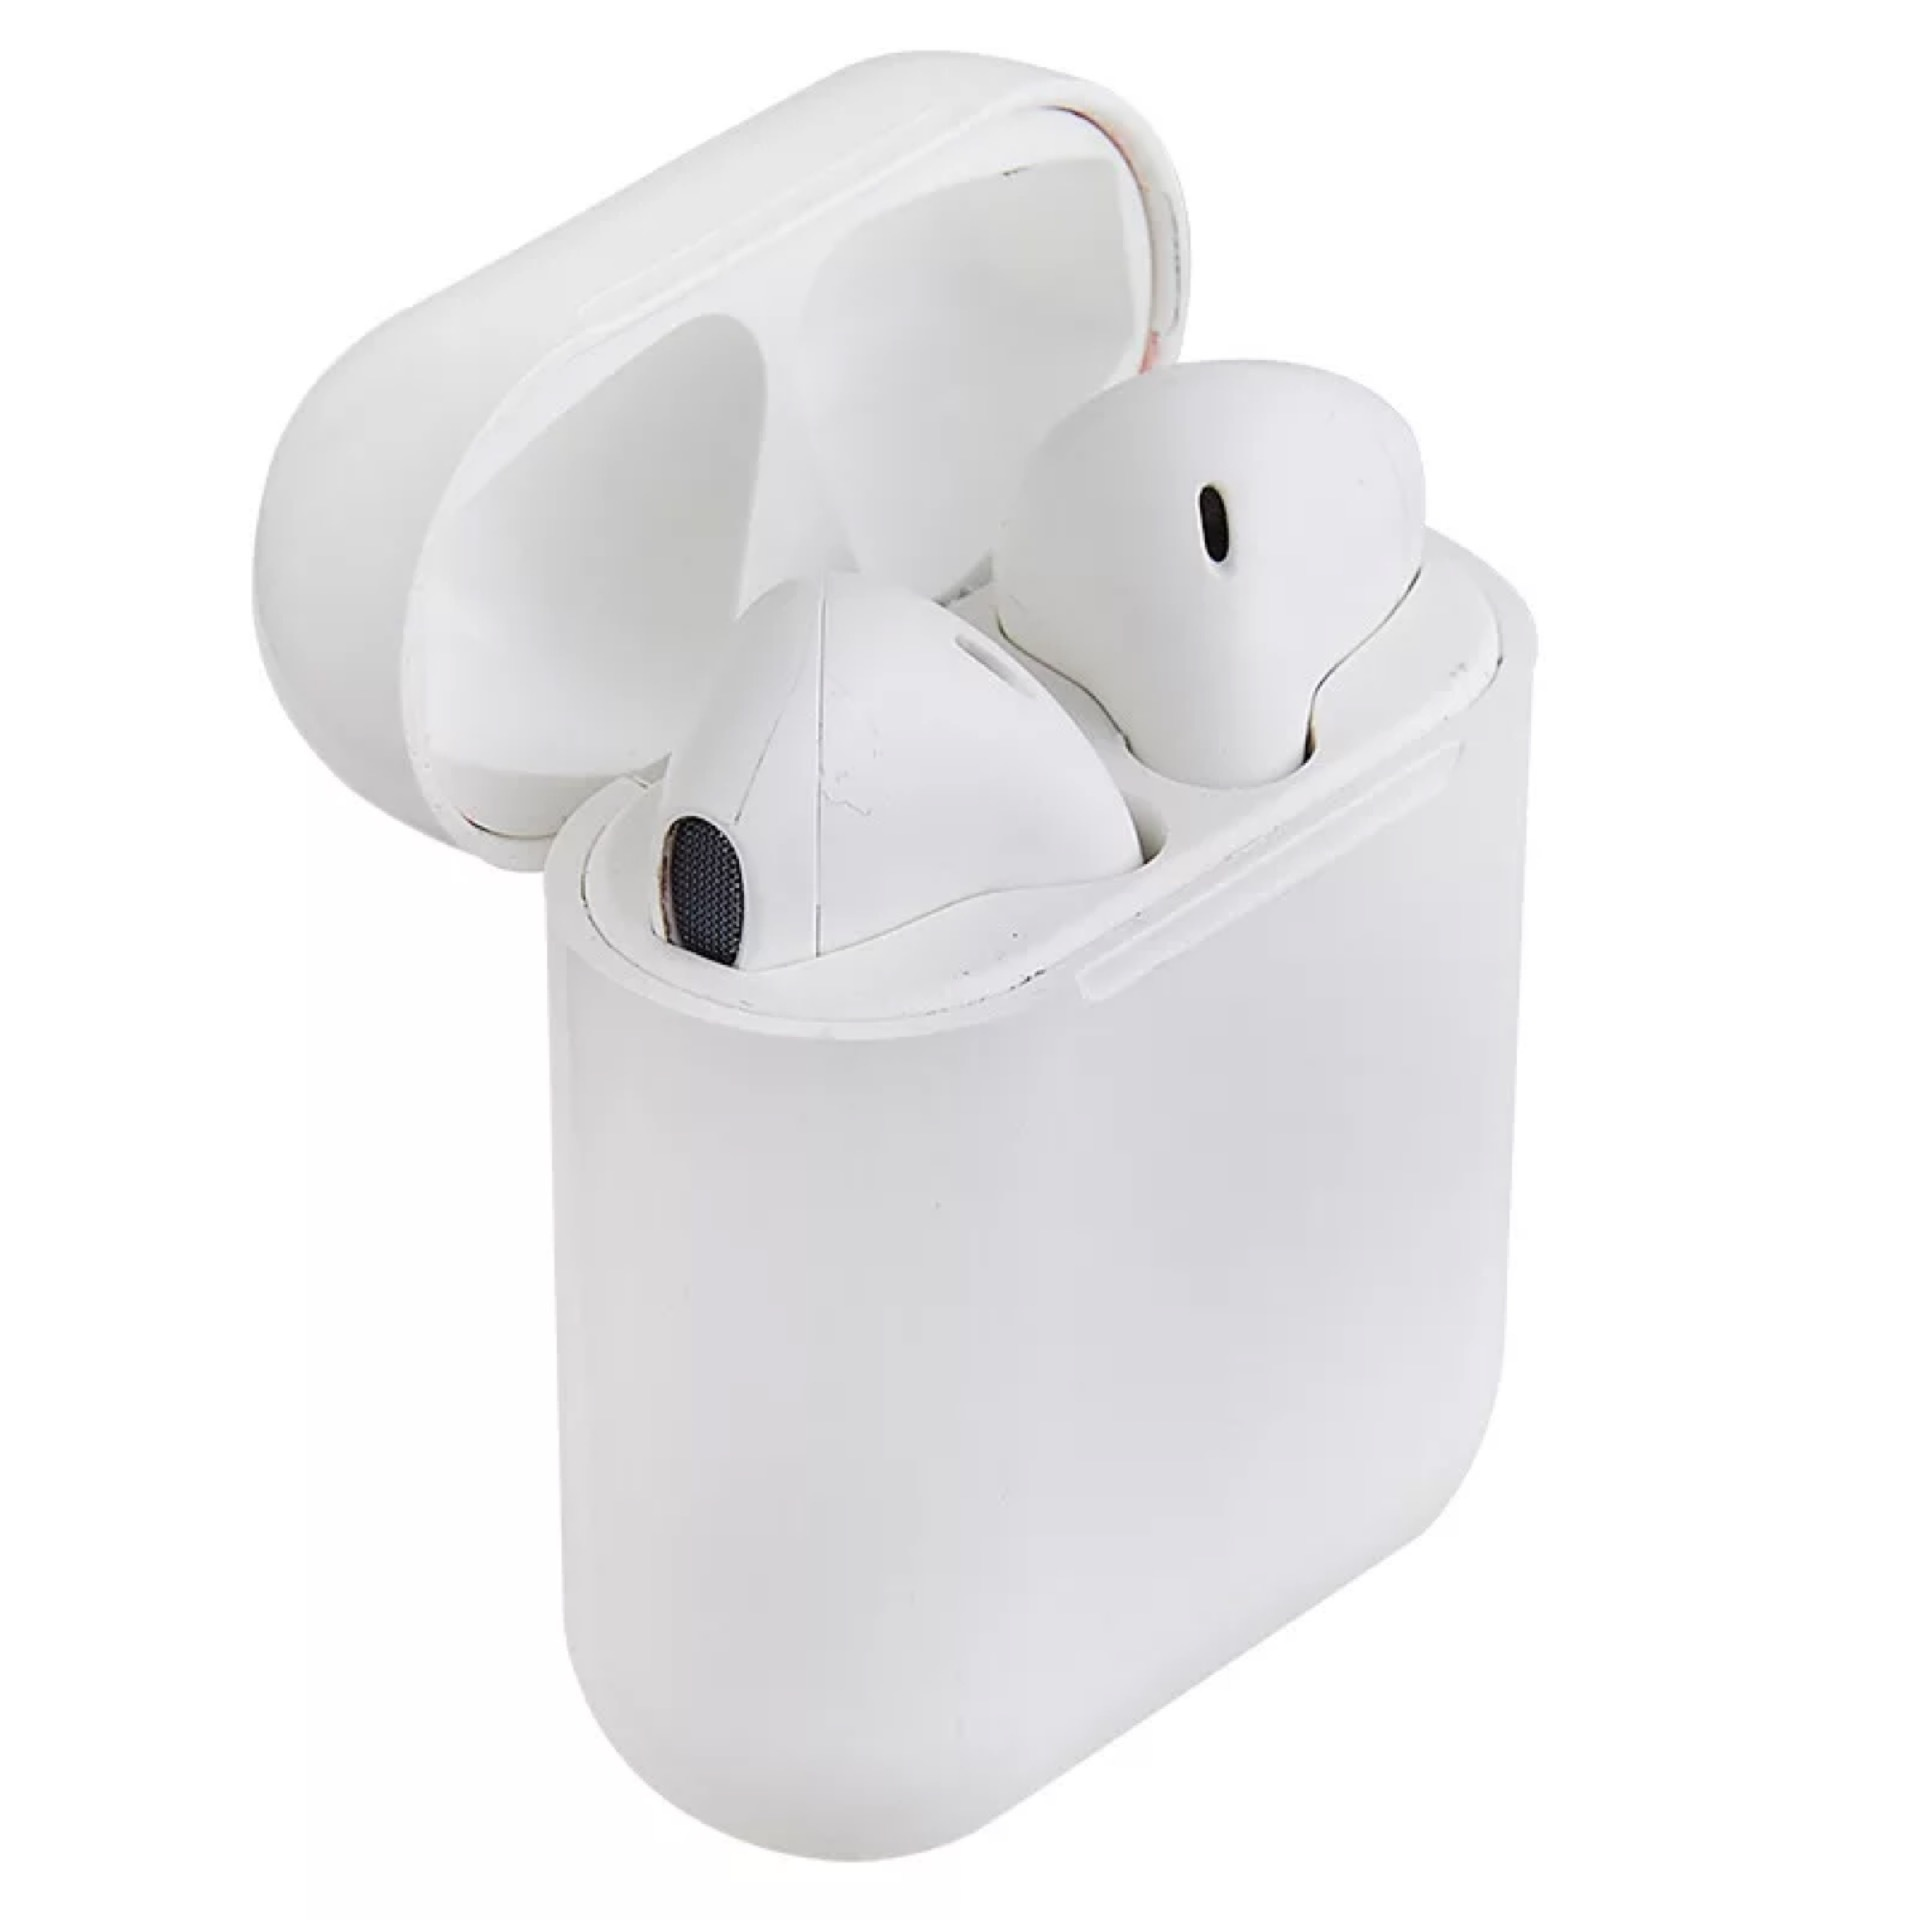 New Afans IFANS for I9S I7S TWS Wireless Bluetooth Earphone Mini Earbuds Air Headsets pods with mic for IPhone x samsung Android ifans mini i9s twins earbuds mini wireless bluetooth earphones i7s tws air headsets pods stereo headphones for iphone android pc